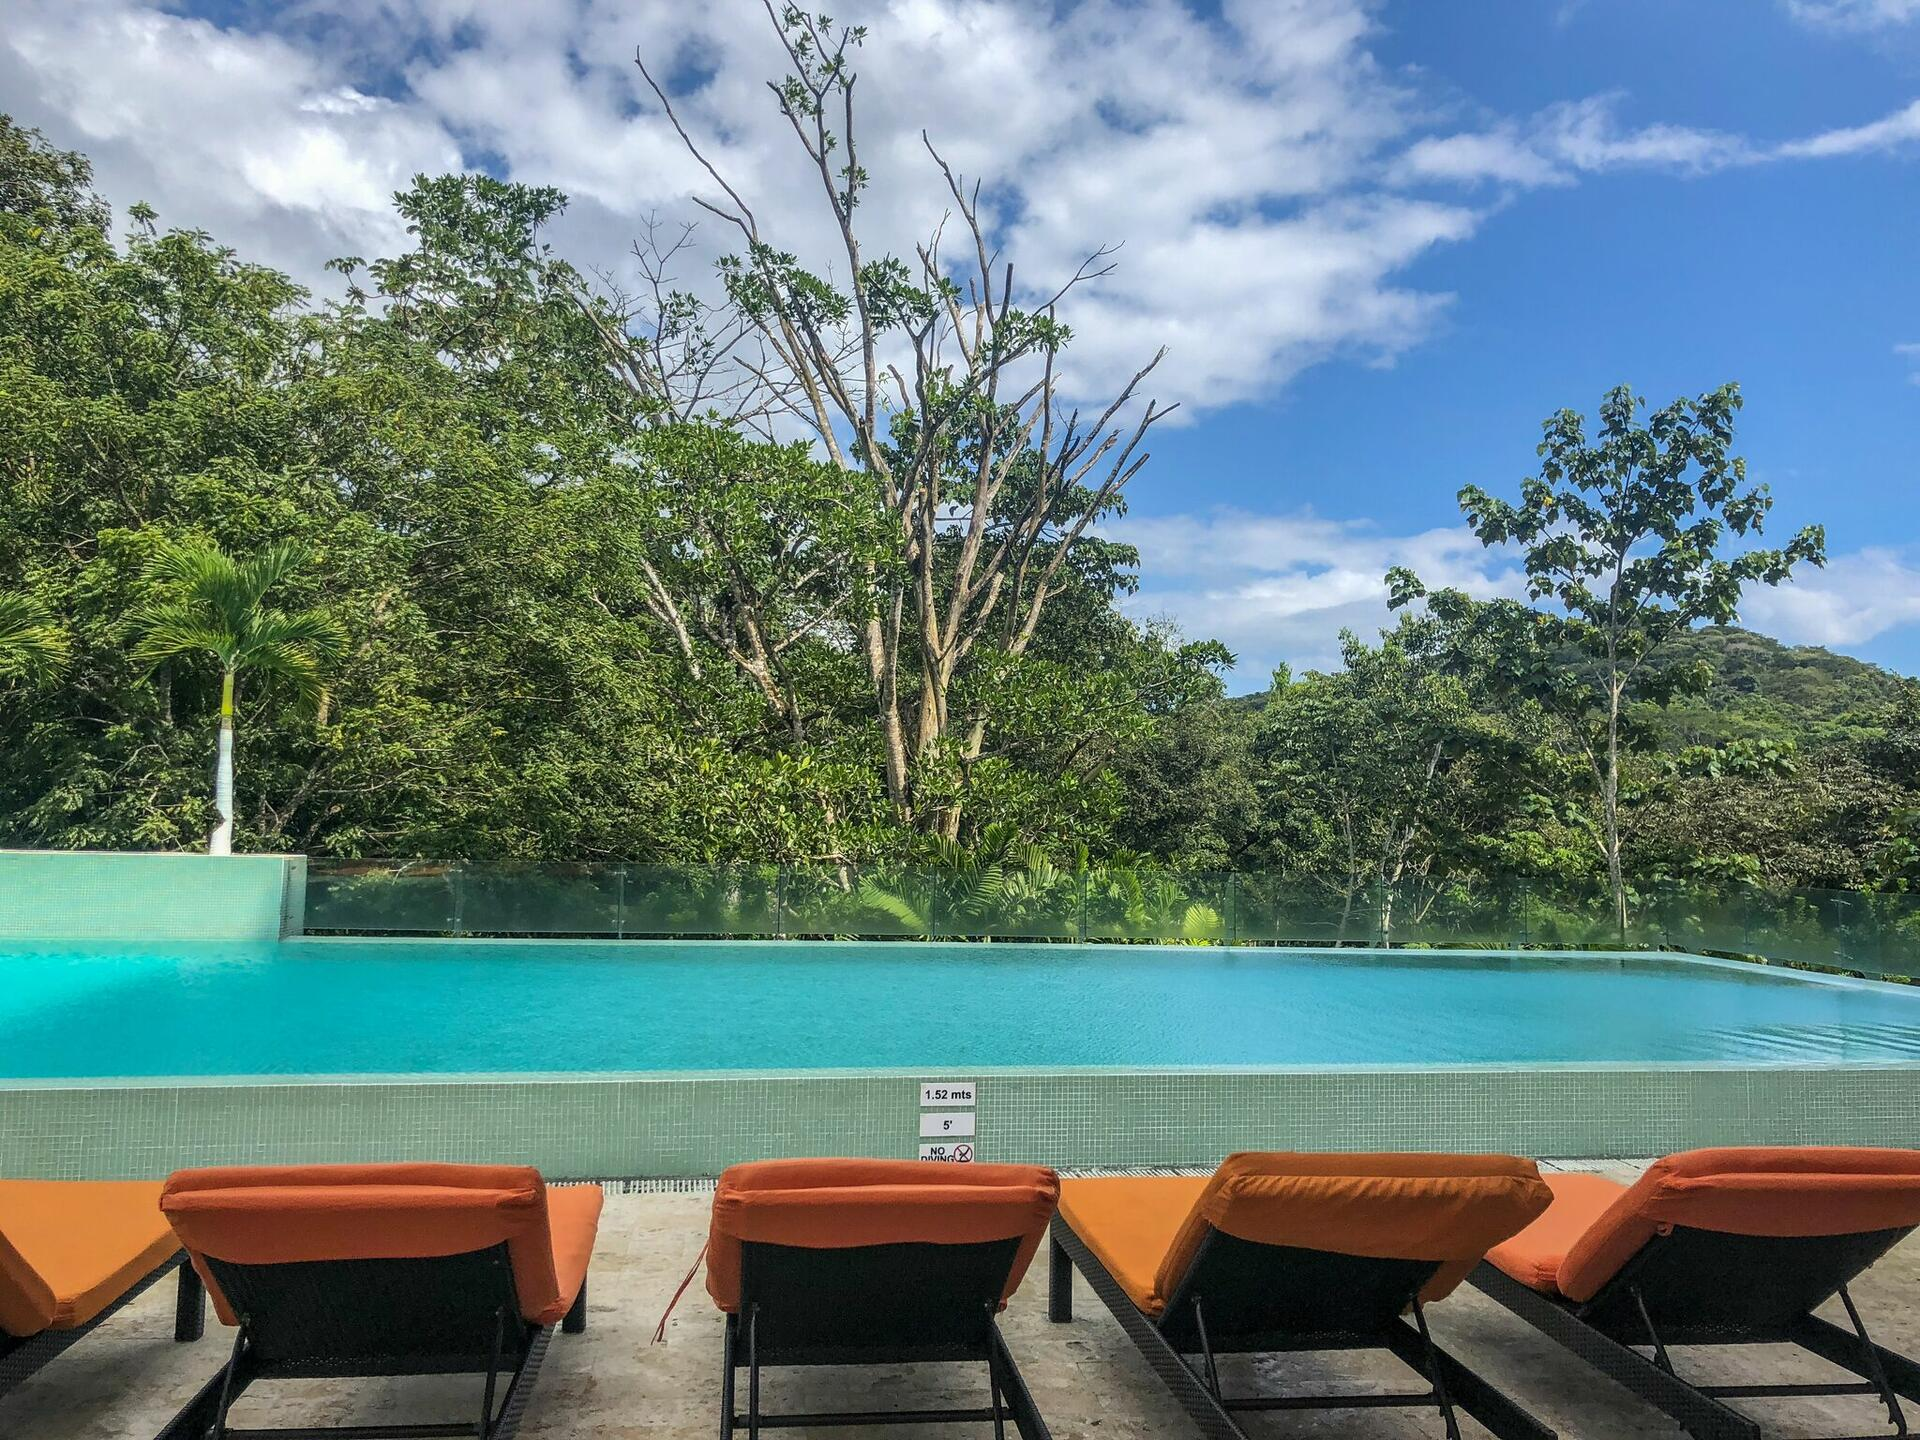 Infinity Pool with view of rainforest